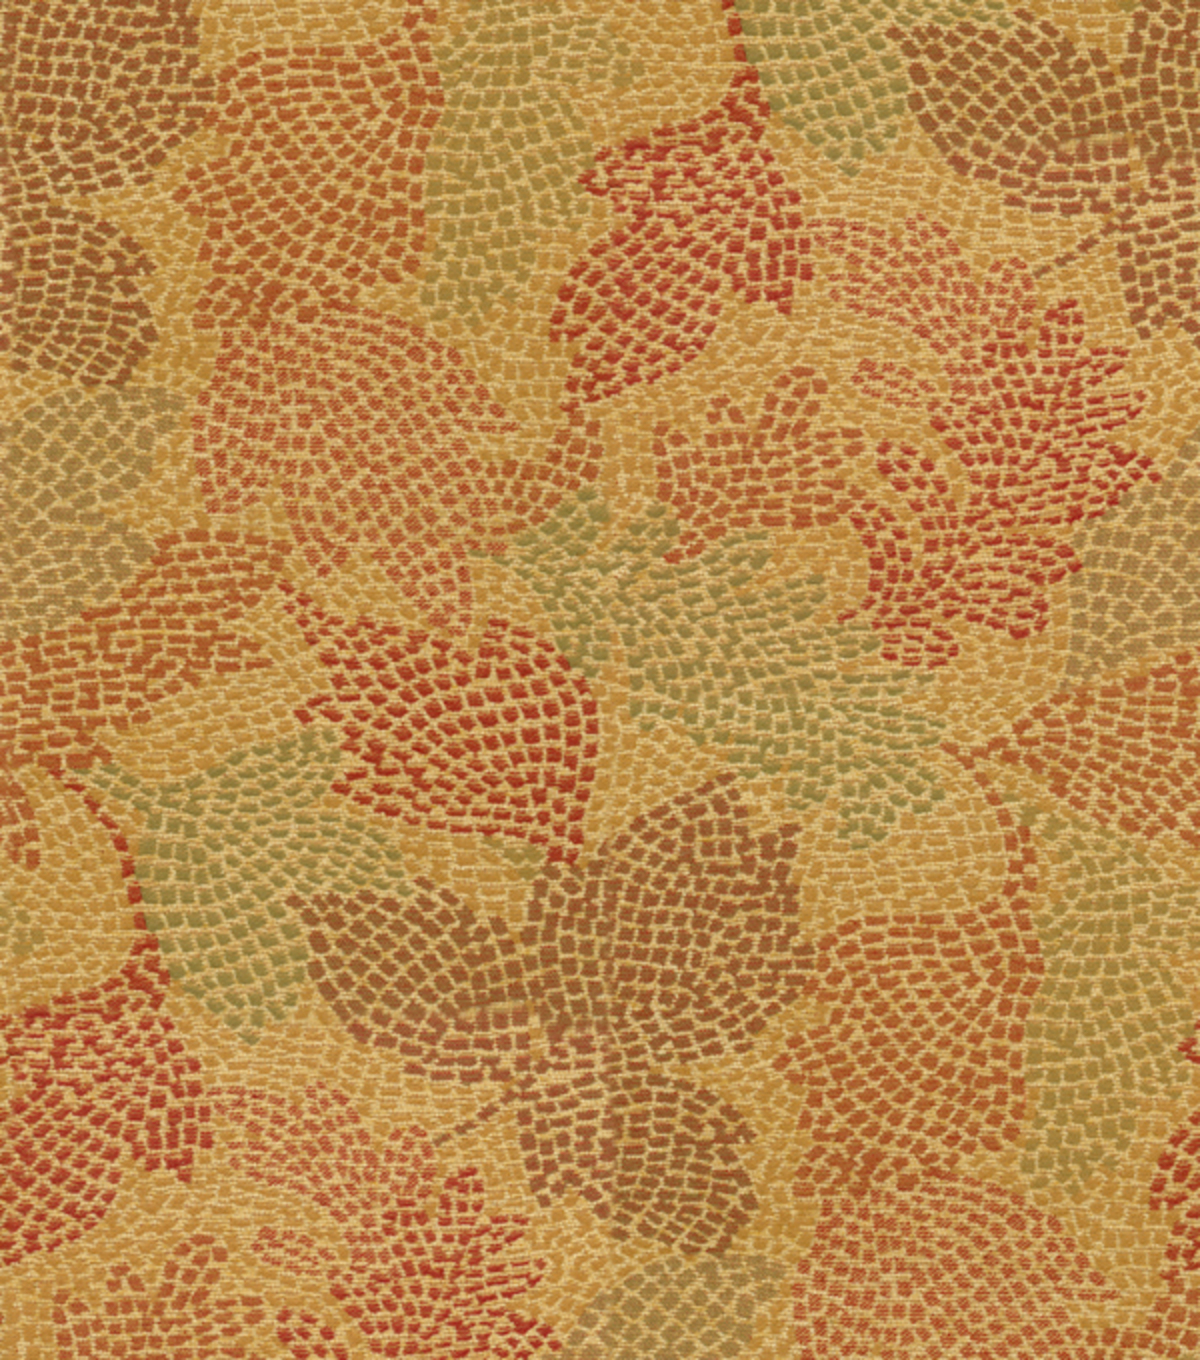 Waverly Upholstery Fabric 54\u0022-Mosaic Leaves Tuscan  sc 1 st  Joann & Waverly Upholstery Fabric Mosaic Leaves Tuscan | JOANN